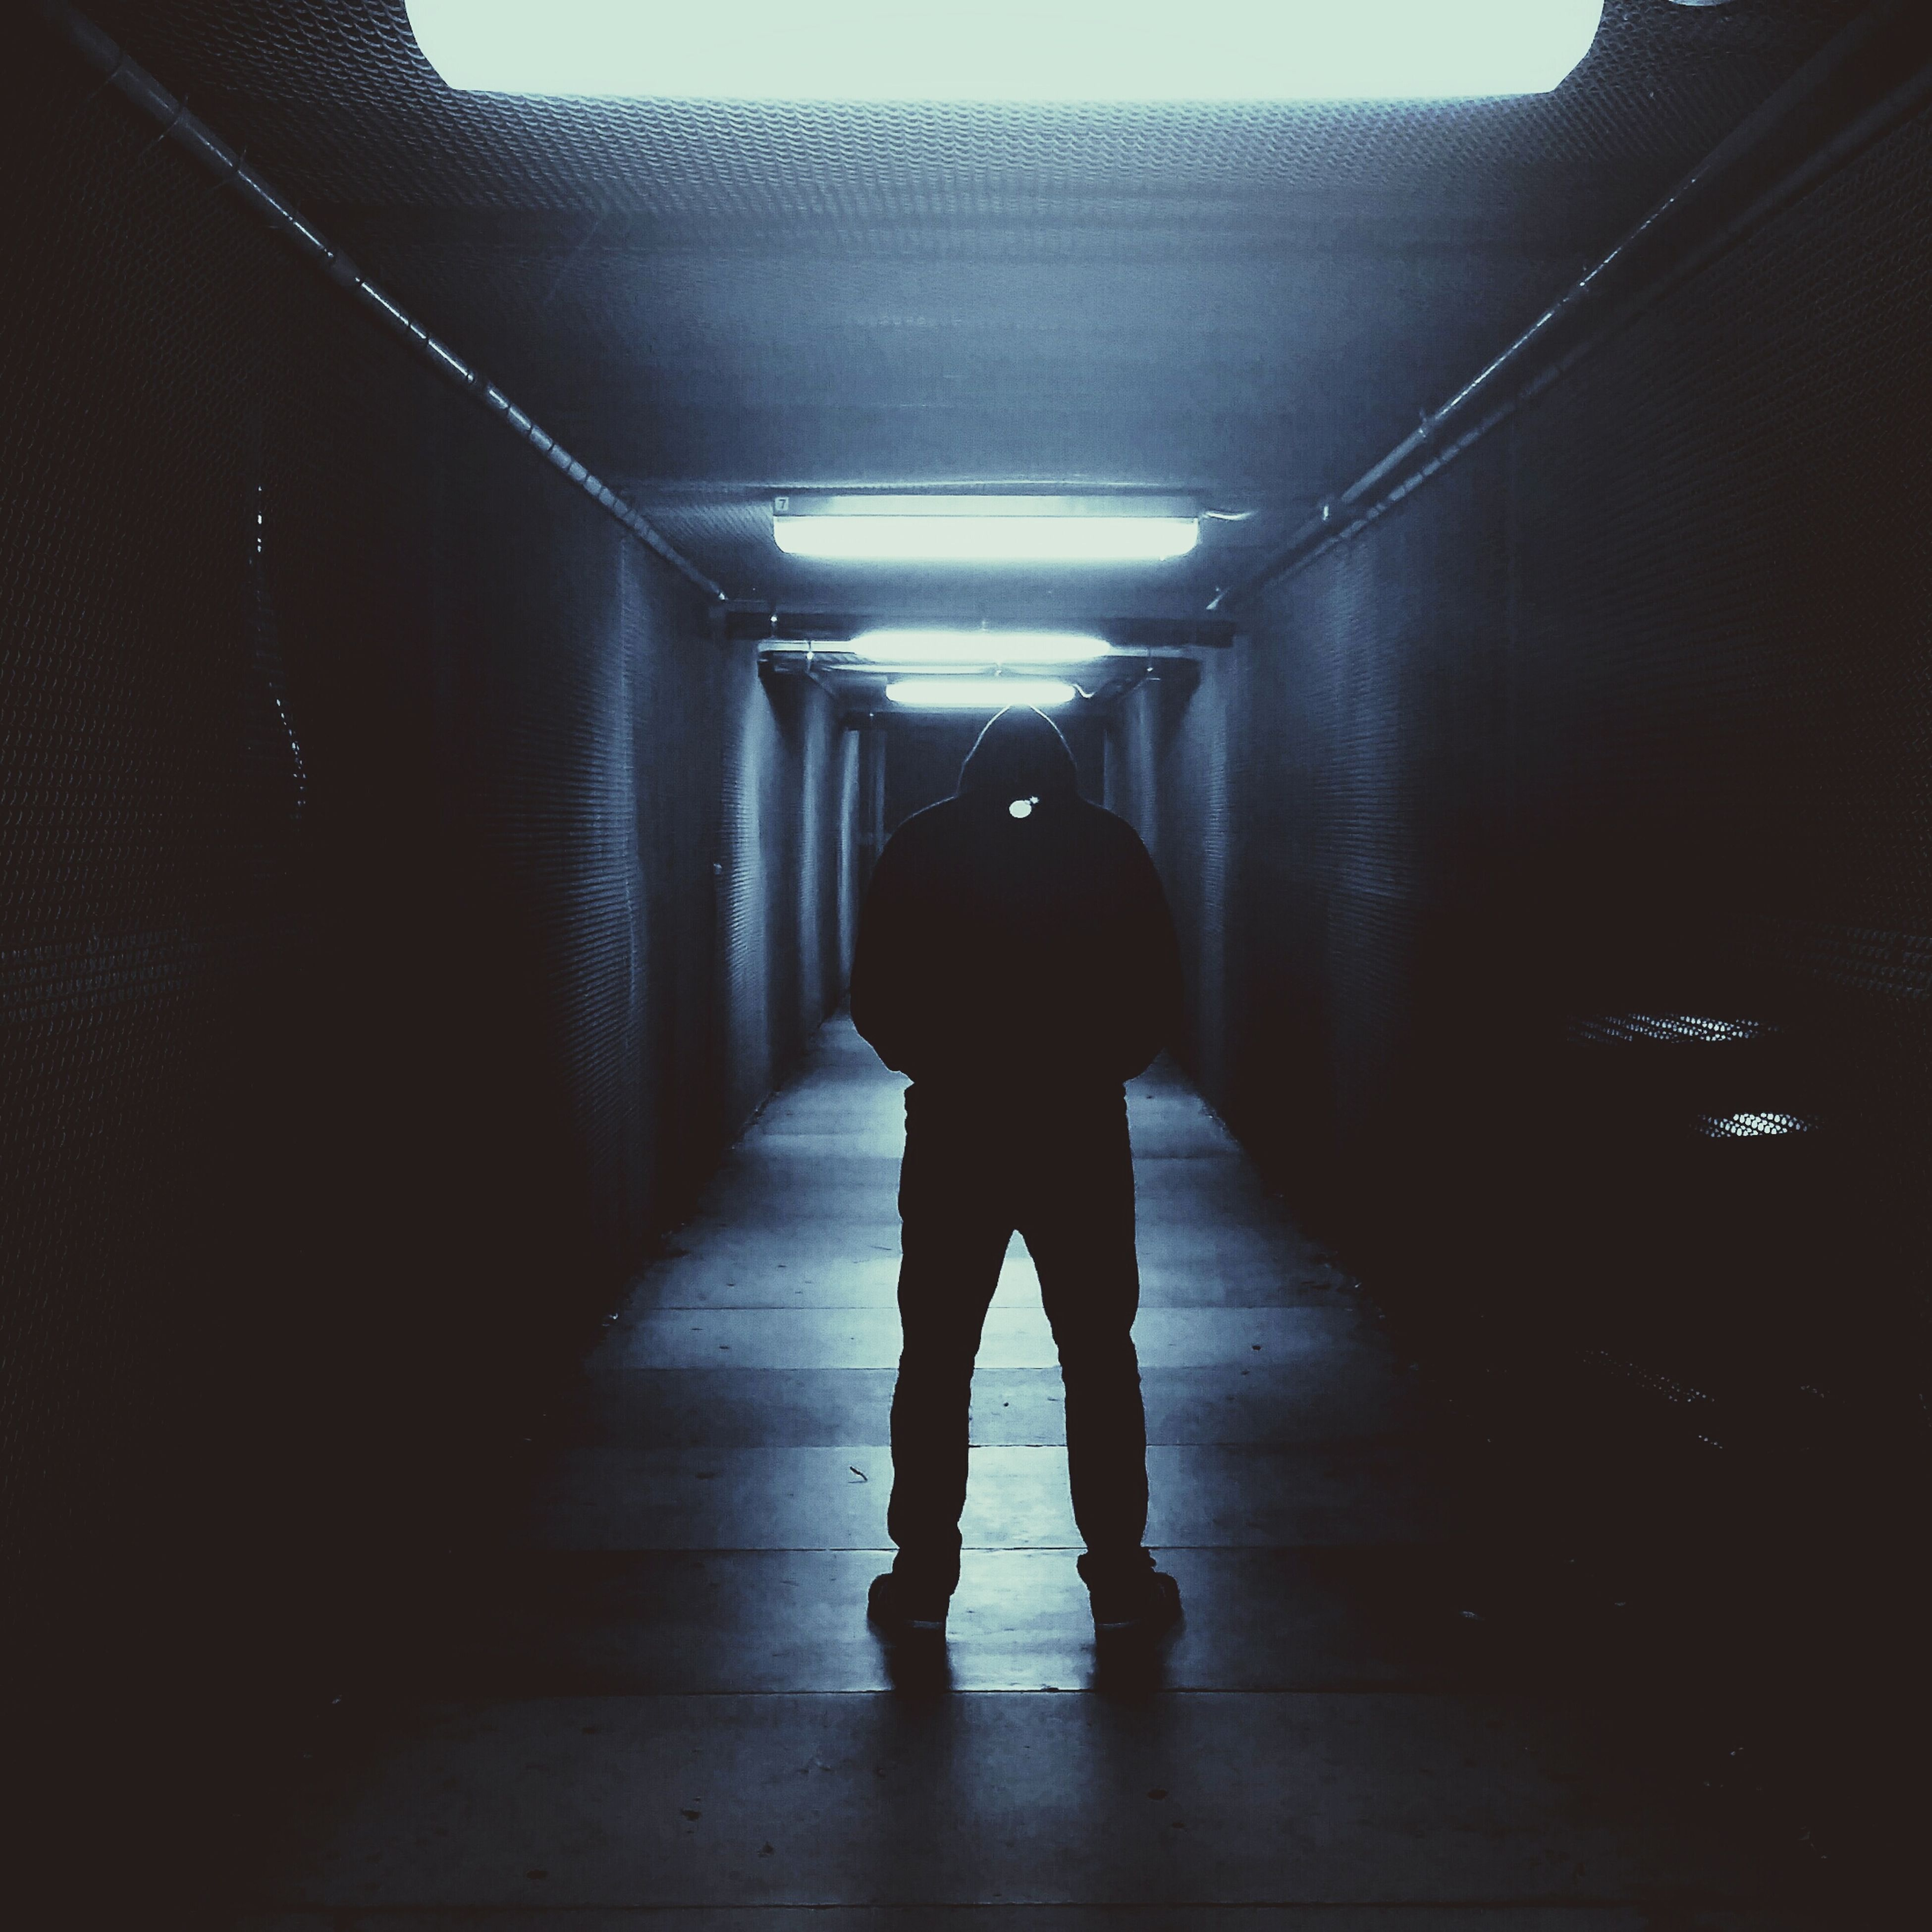 indoors, full length, rear view, tunnel, walking, the way forward, lifestyles, illuminated, corridor, men, architecture, built structure, wall - building feature, standing, silhouette, ceiling, lighting equipment, diminishing perspective